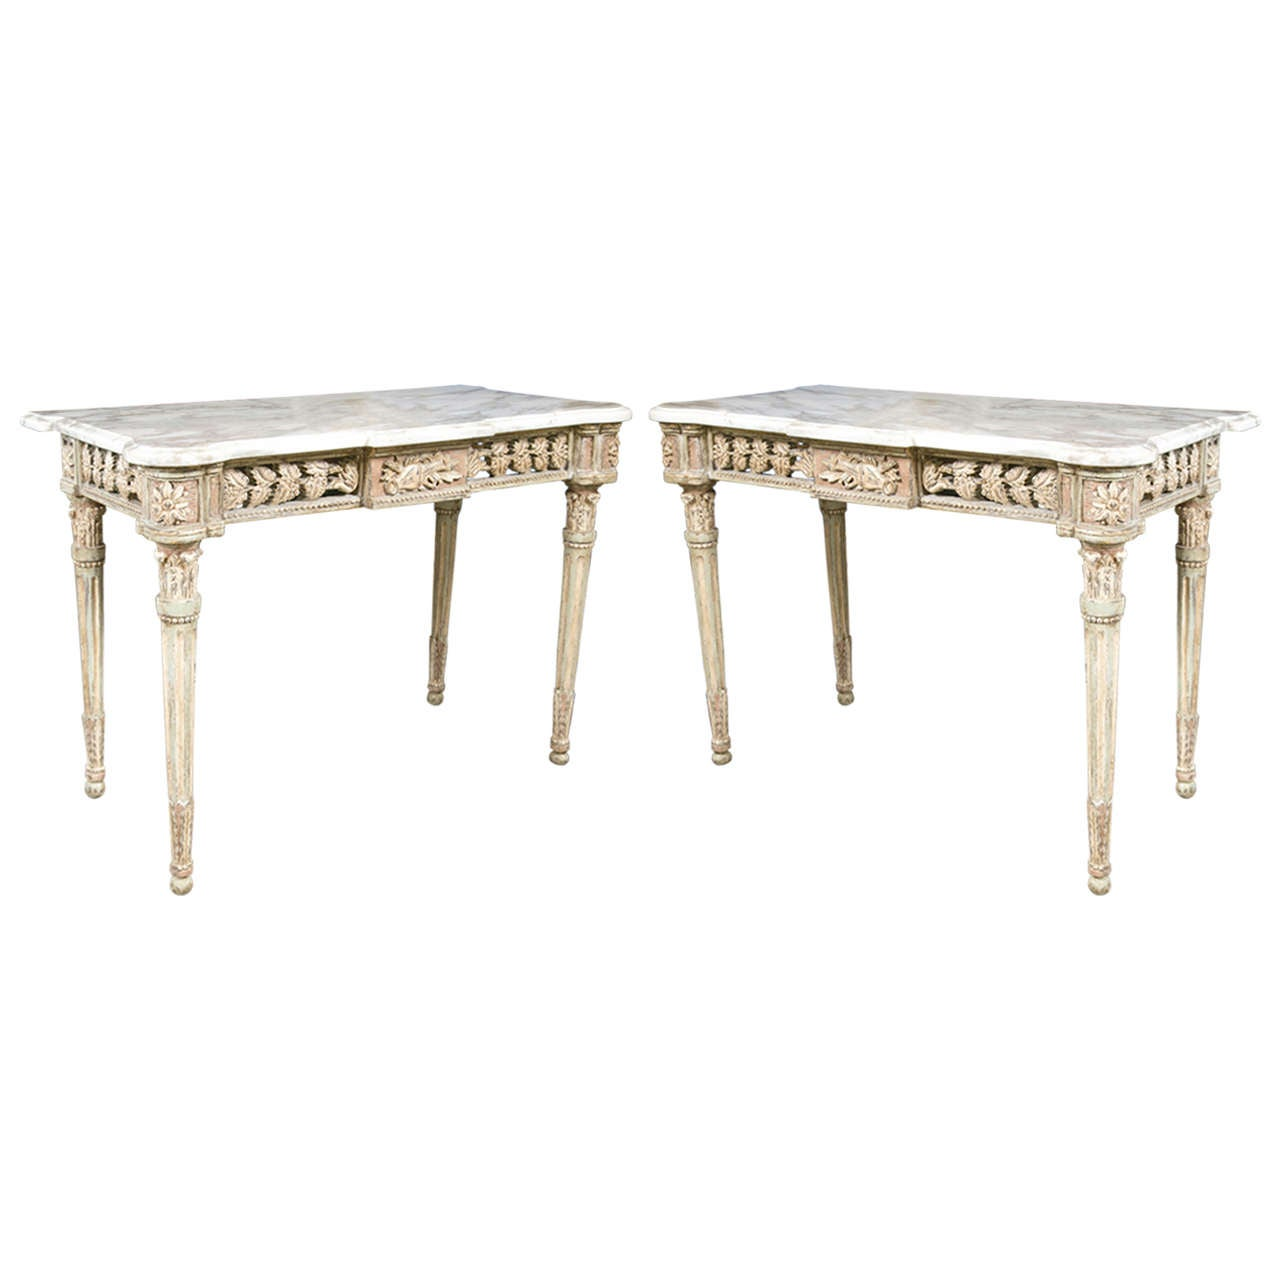 Pair of italian carved wood console tables with carrara marble pair of italian carved wood console tables with carrara marble tops 1 geotapseo Gallery